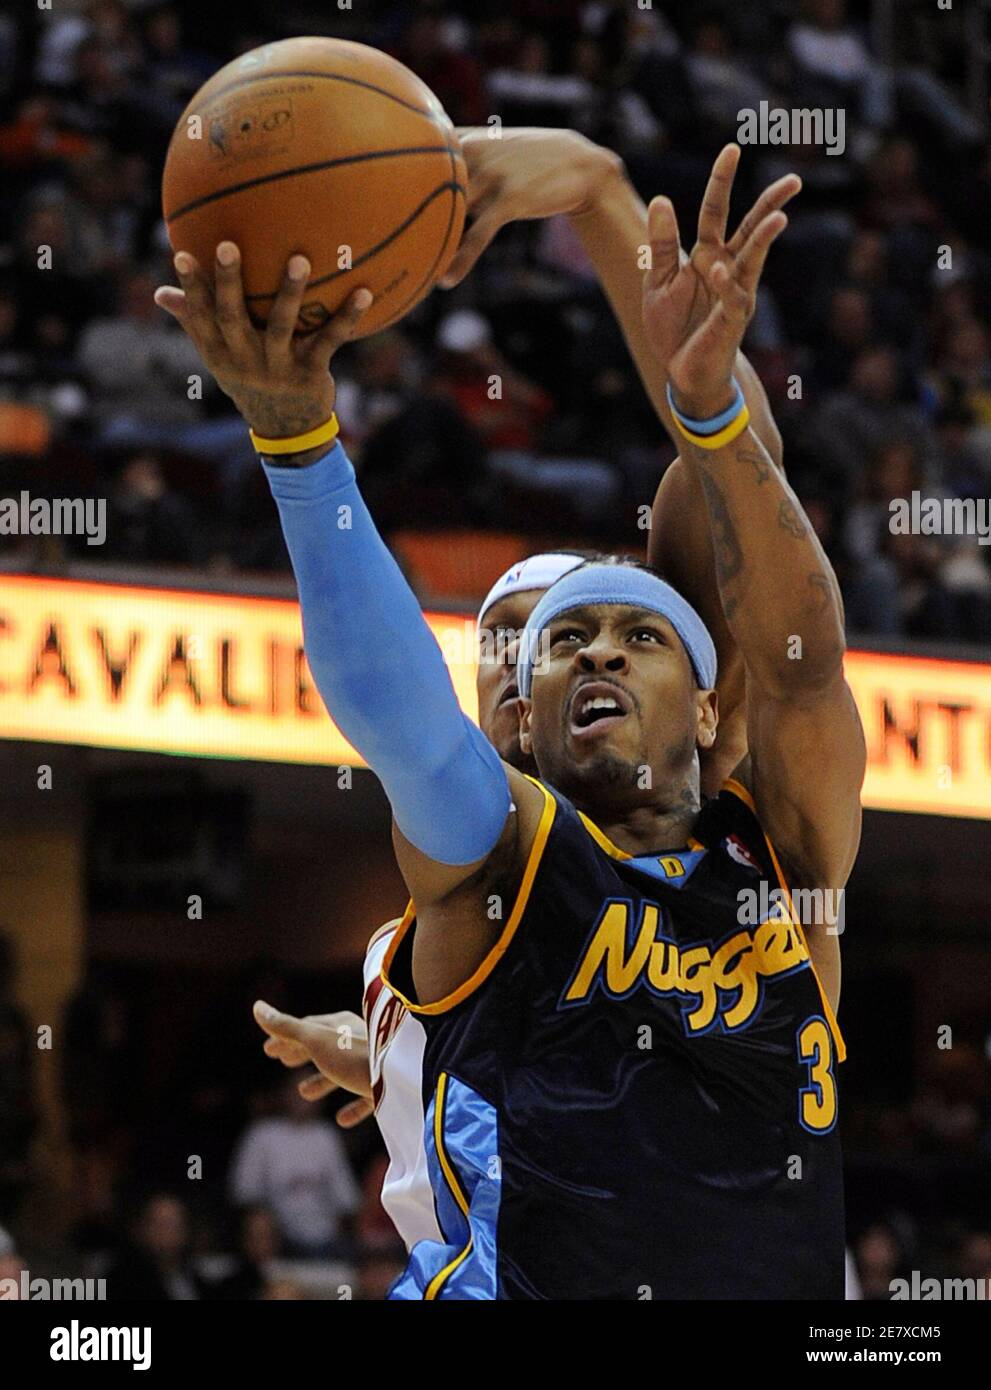 https www alamy com denver nuggets allen iverson is fouled by cleveland cavaliers shannon brown in the second half of their nba basketball game in cleveland ohio february 10 2008 reutersaaron josefczyk united states image400721781 html